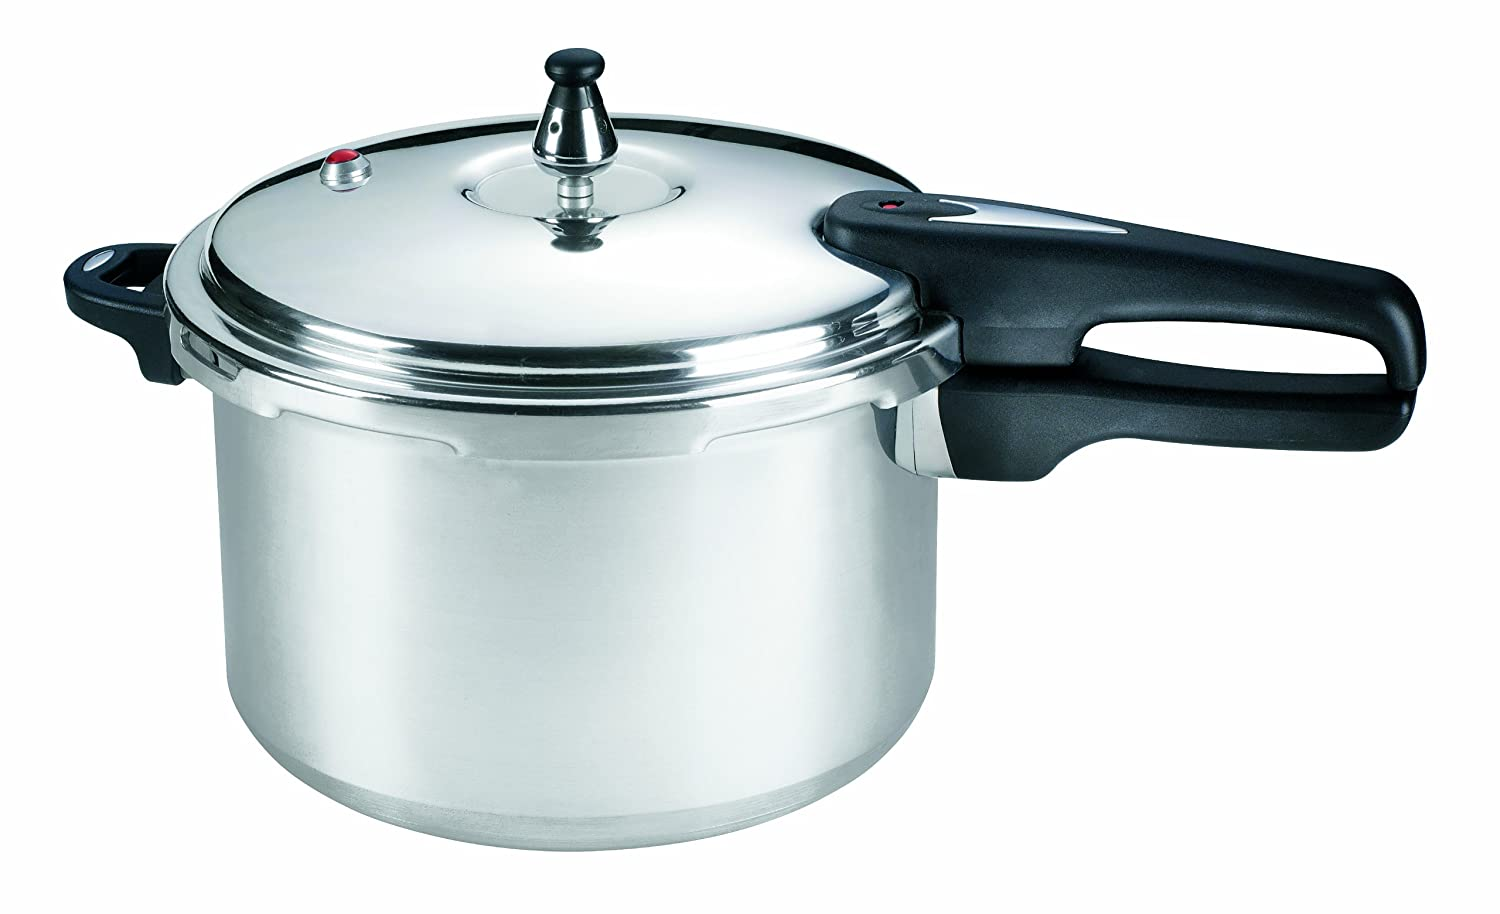 Mirro 92180A Polished Aluminum10-PSI Pressure Cooker Cookware, 8-Quart, Silver